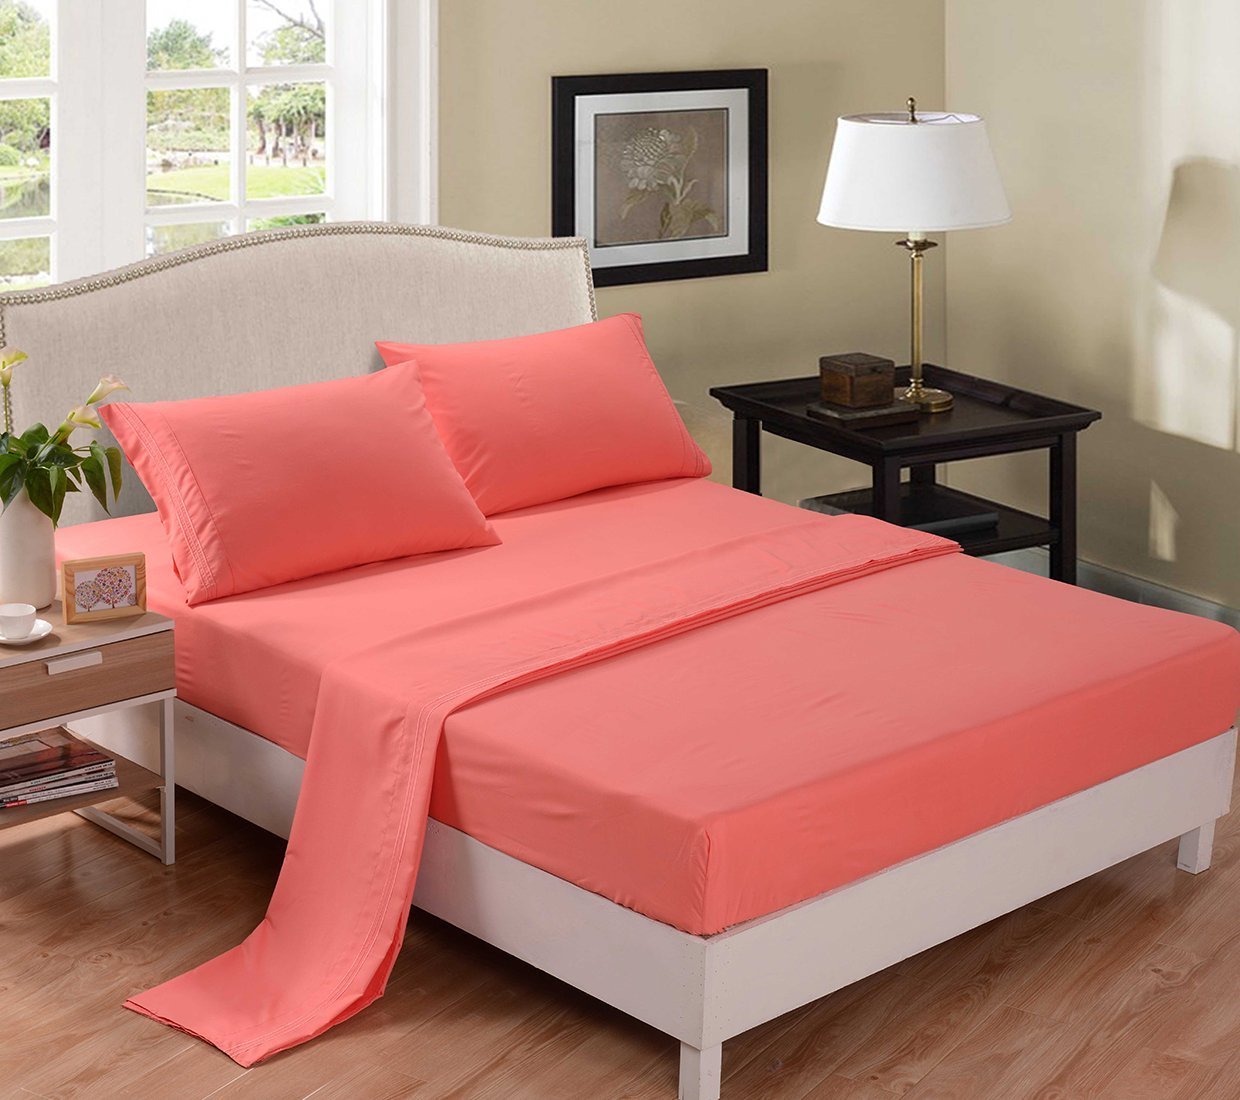 Image of: Coral And Taupe Bedding